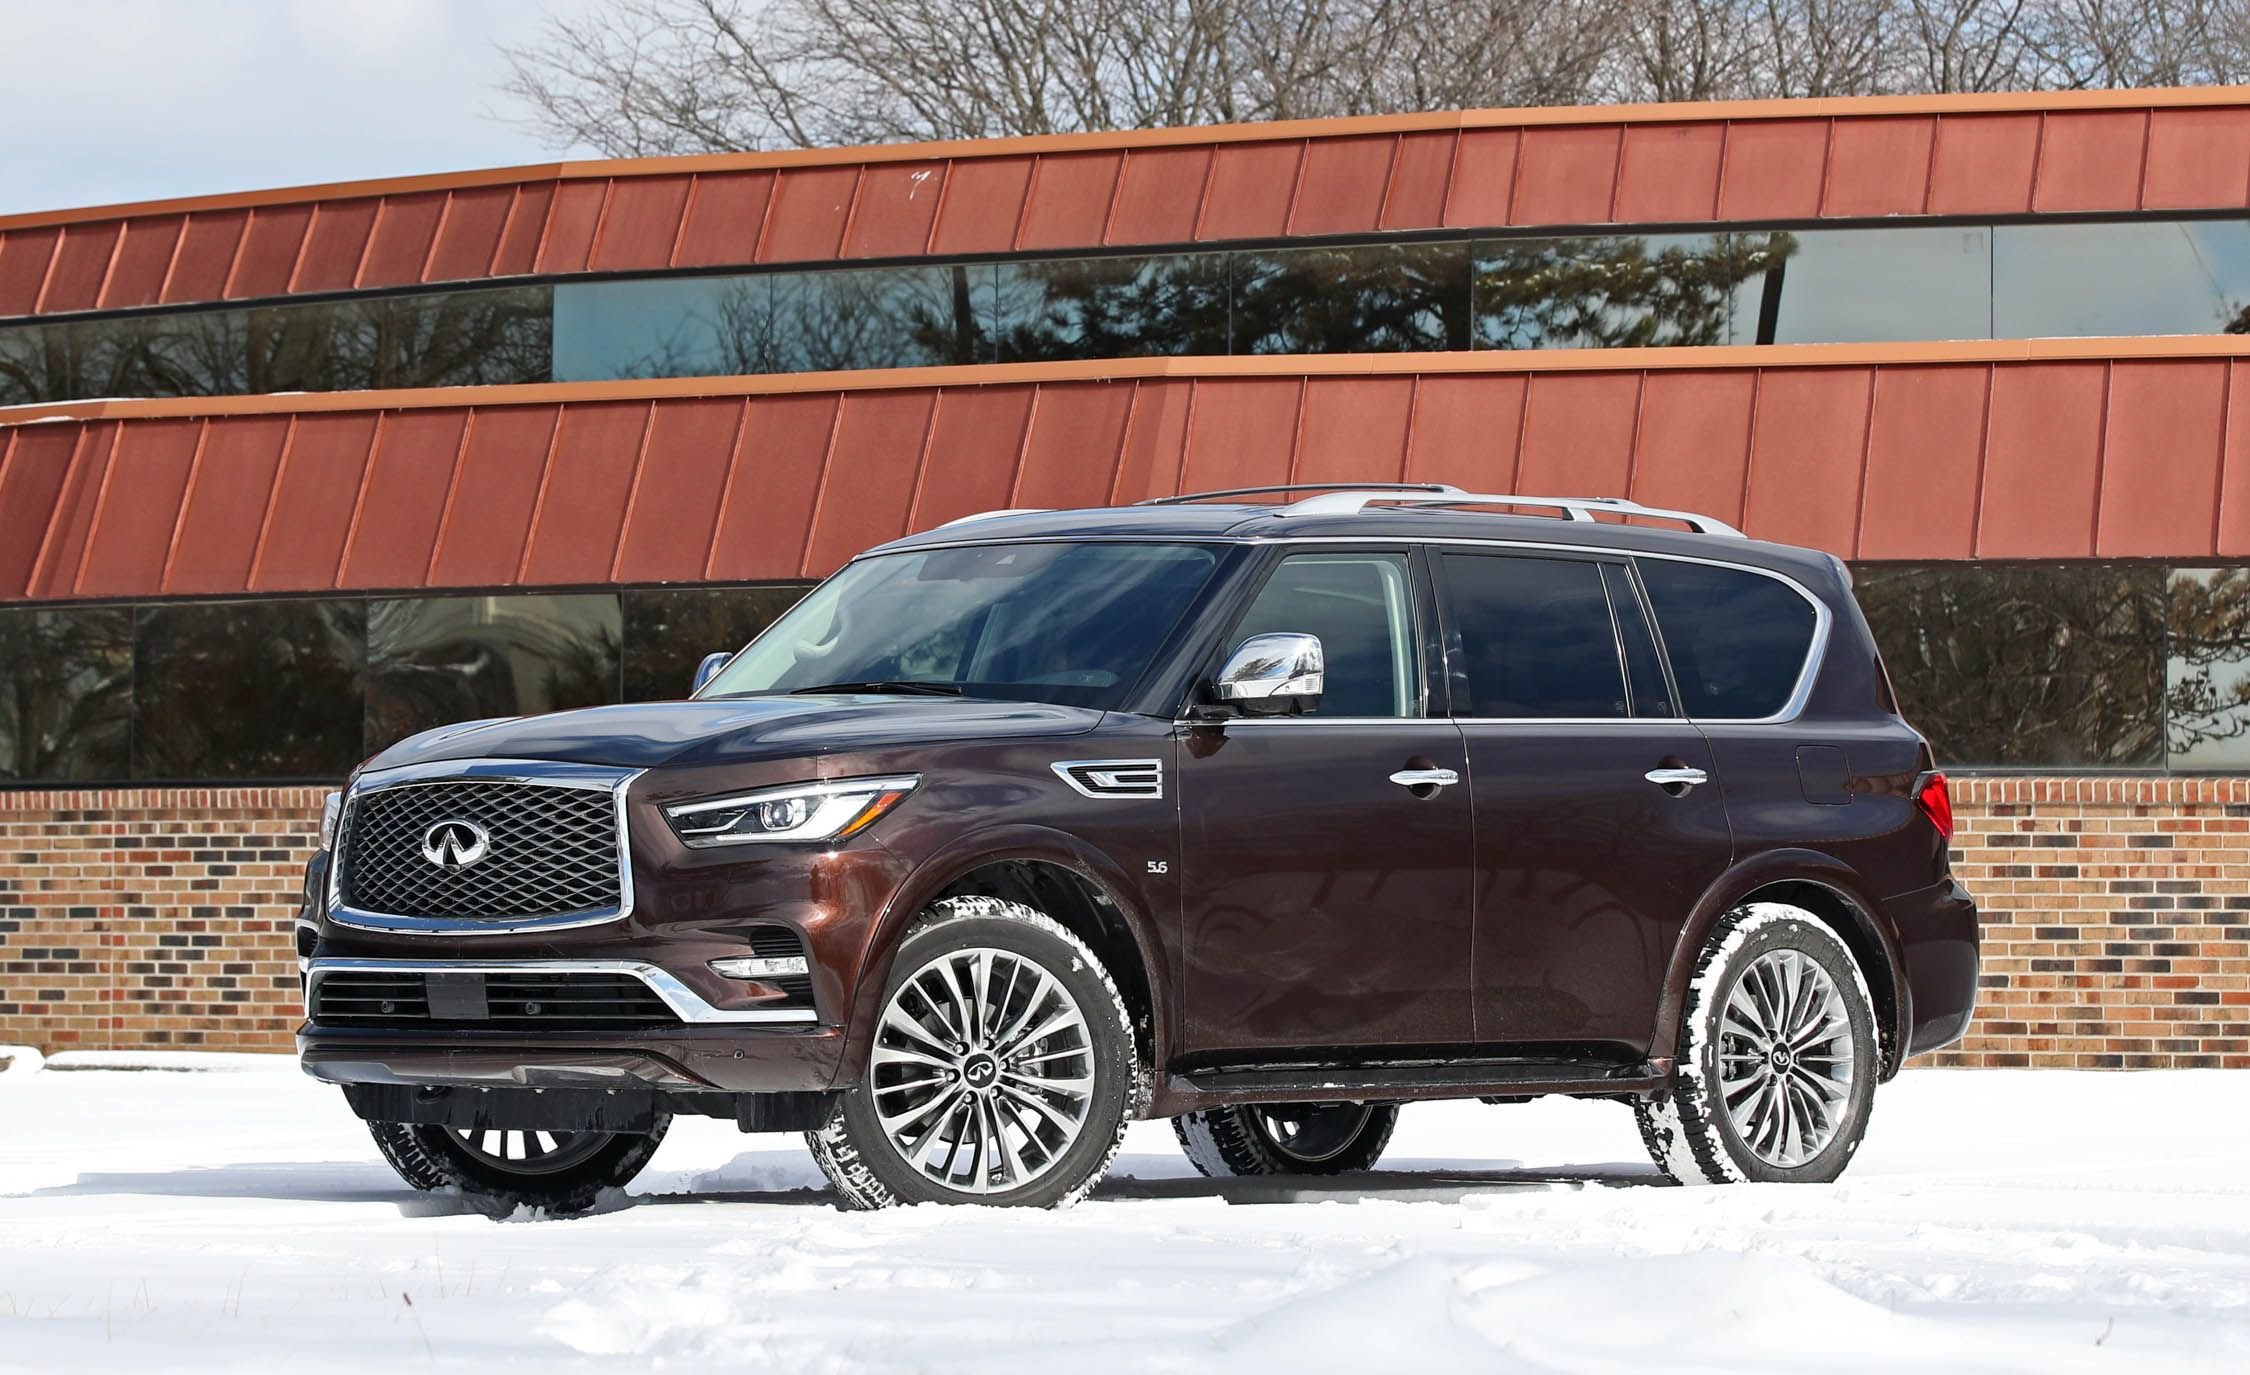 2018 Infiniti QX80 | Safety and Driver Assistance Review | Car and Driver